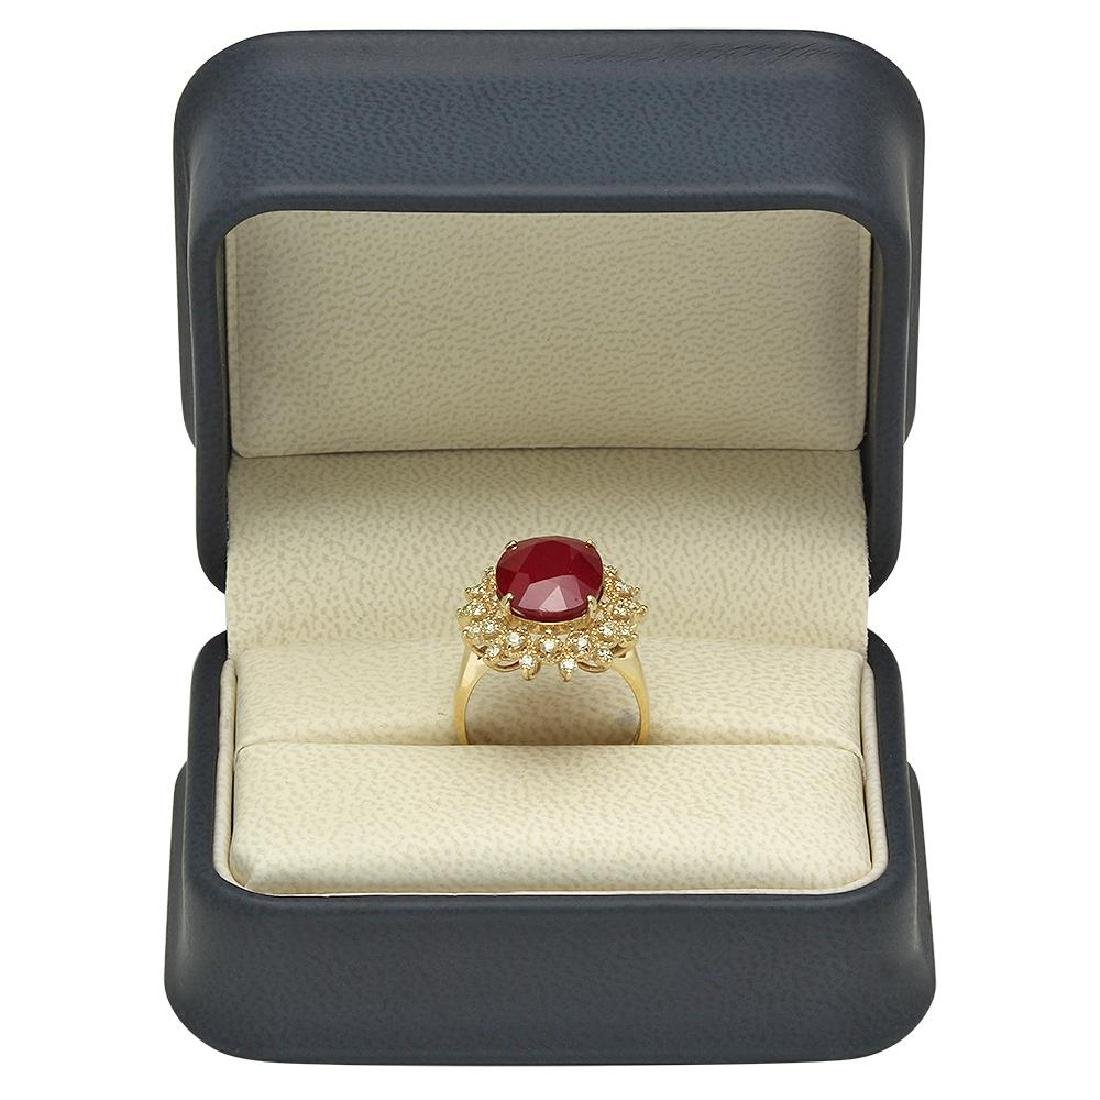 14K Gold 8.61ct Ruby 0.55ct Diamond Ring - 4